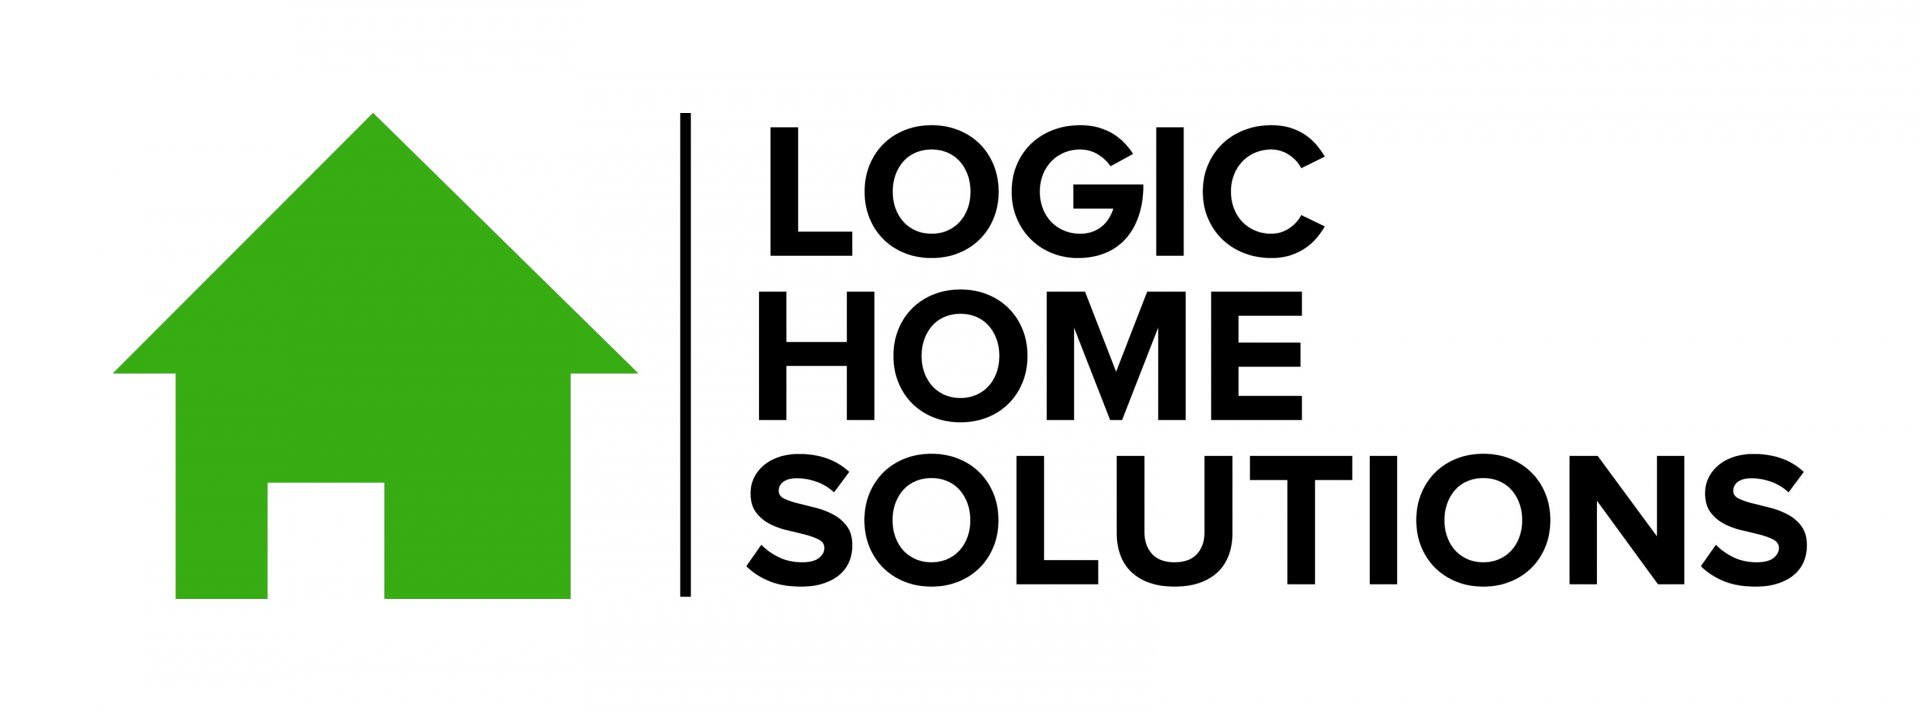 Logic Home Solutions  logo